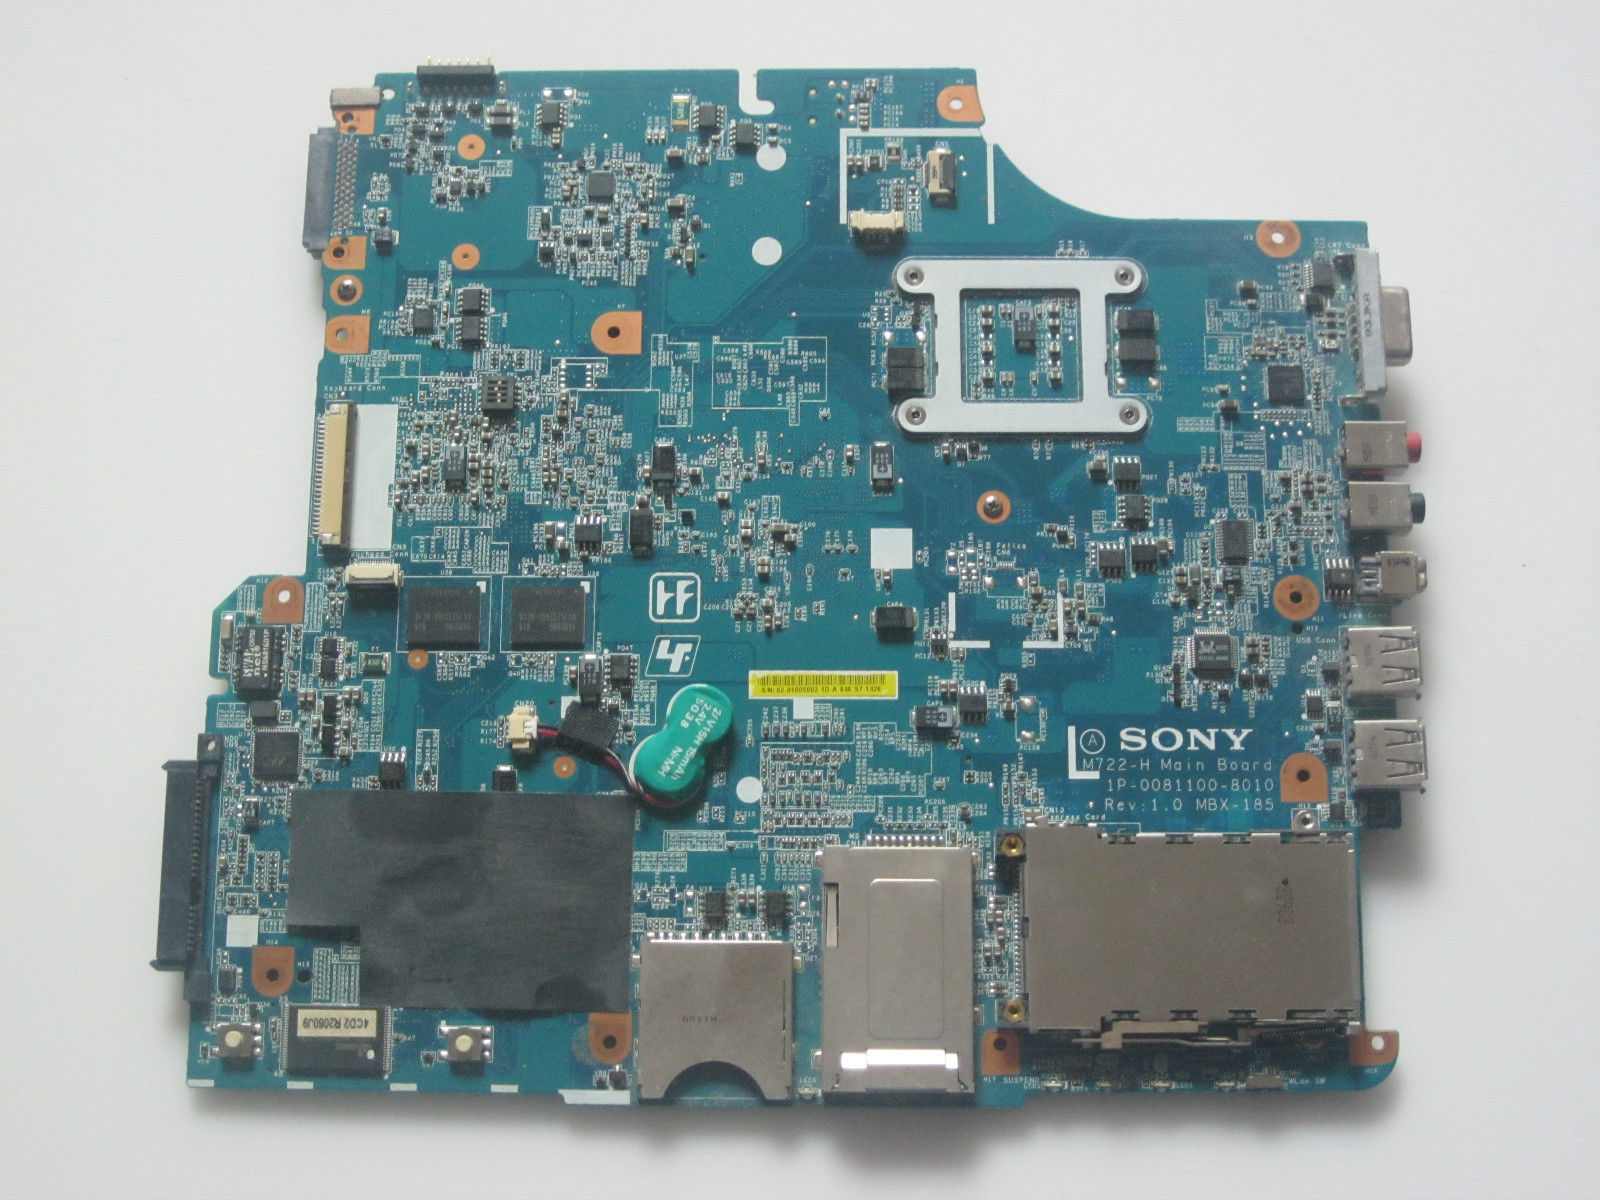 MBX-185 Laptop Motherboard for Sony Vaio VGN-NR31Z/S M730 A1509920A